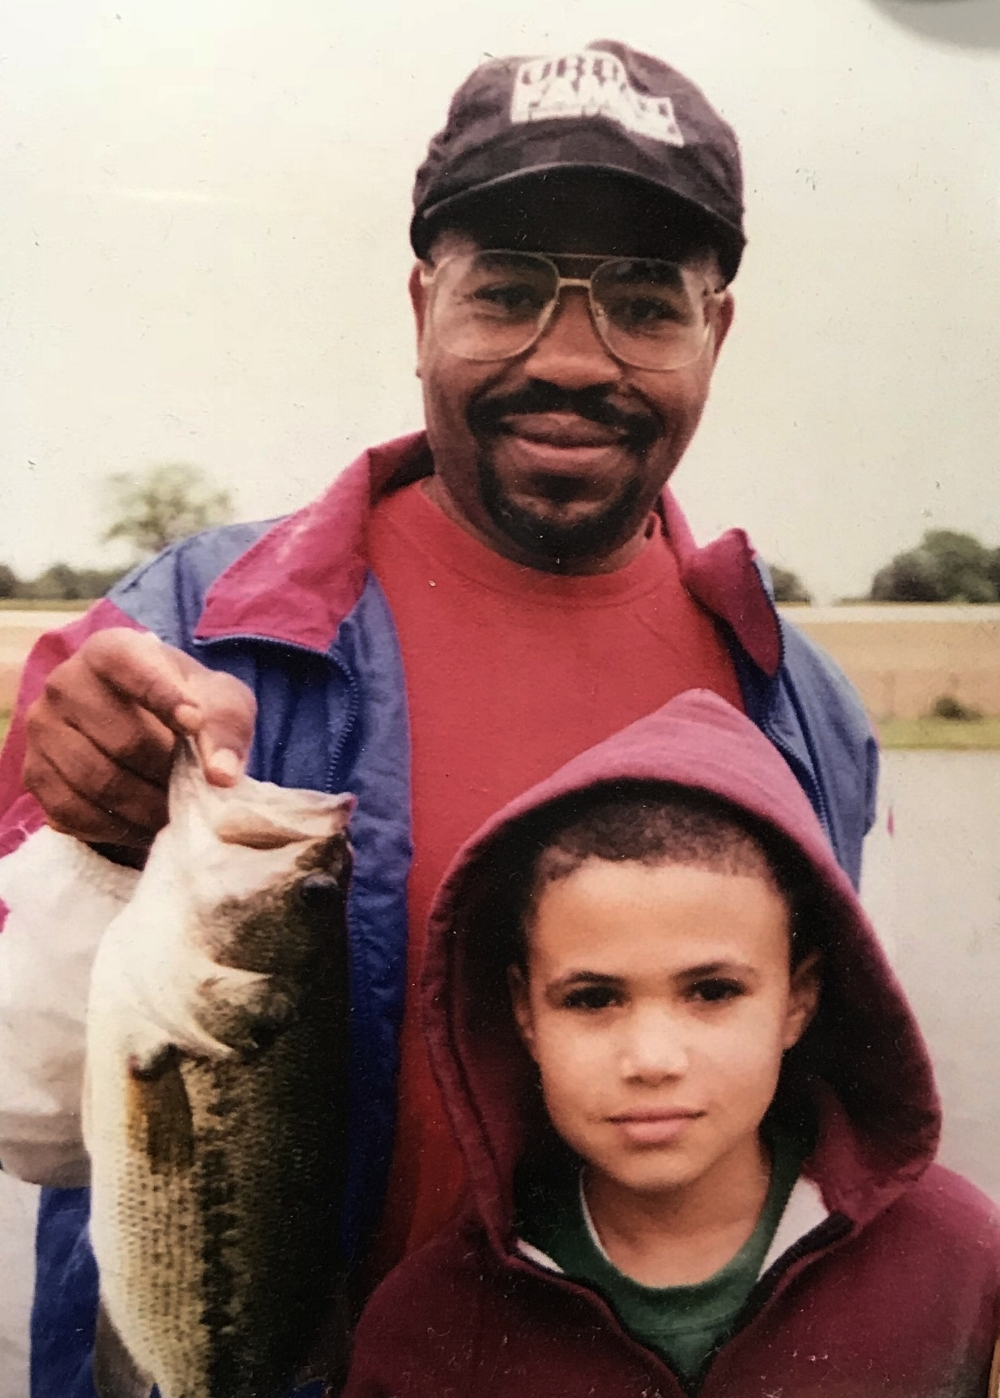 My dad and me on a fishing trip, circa 1995.